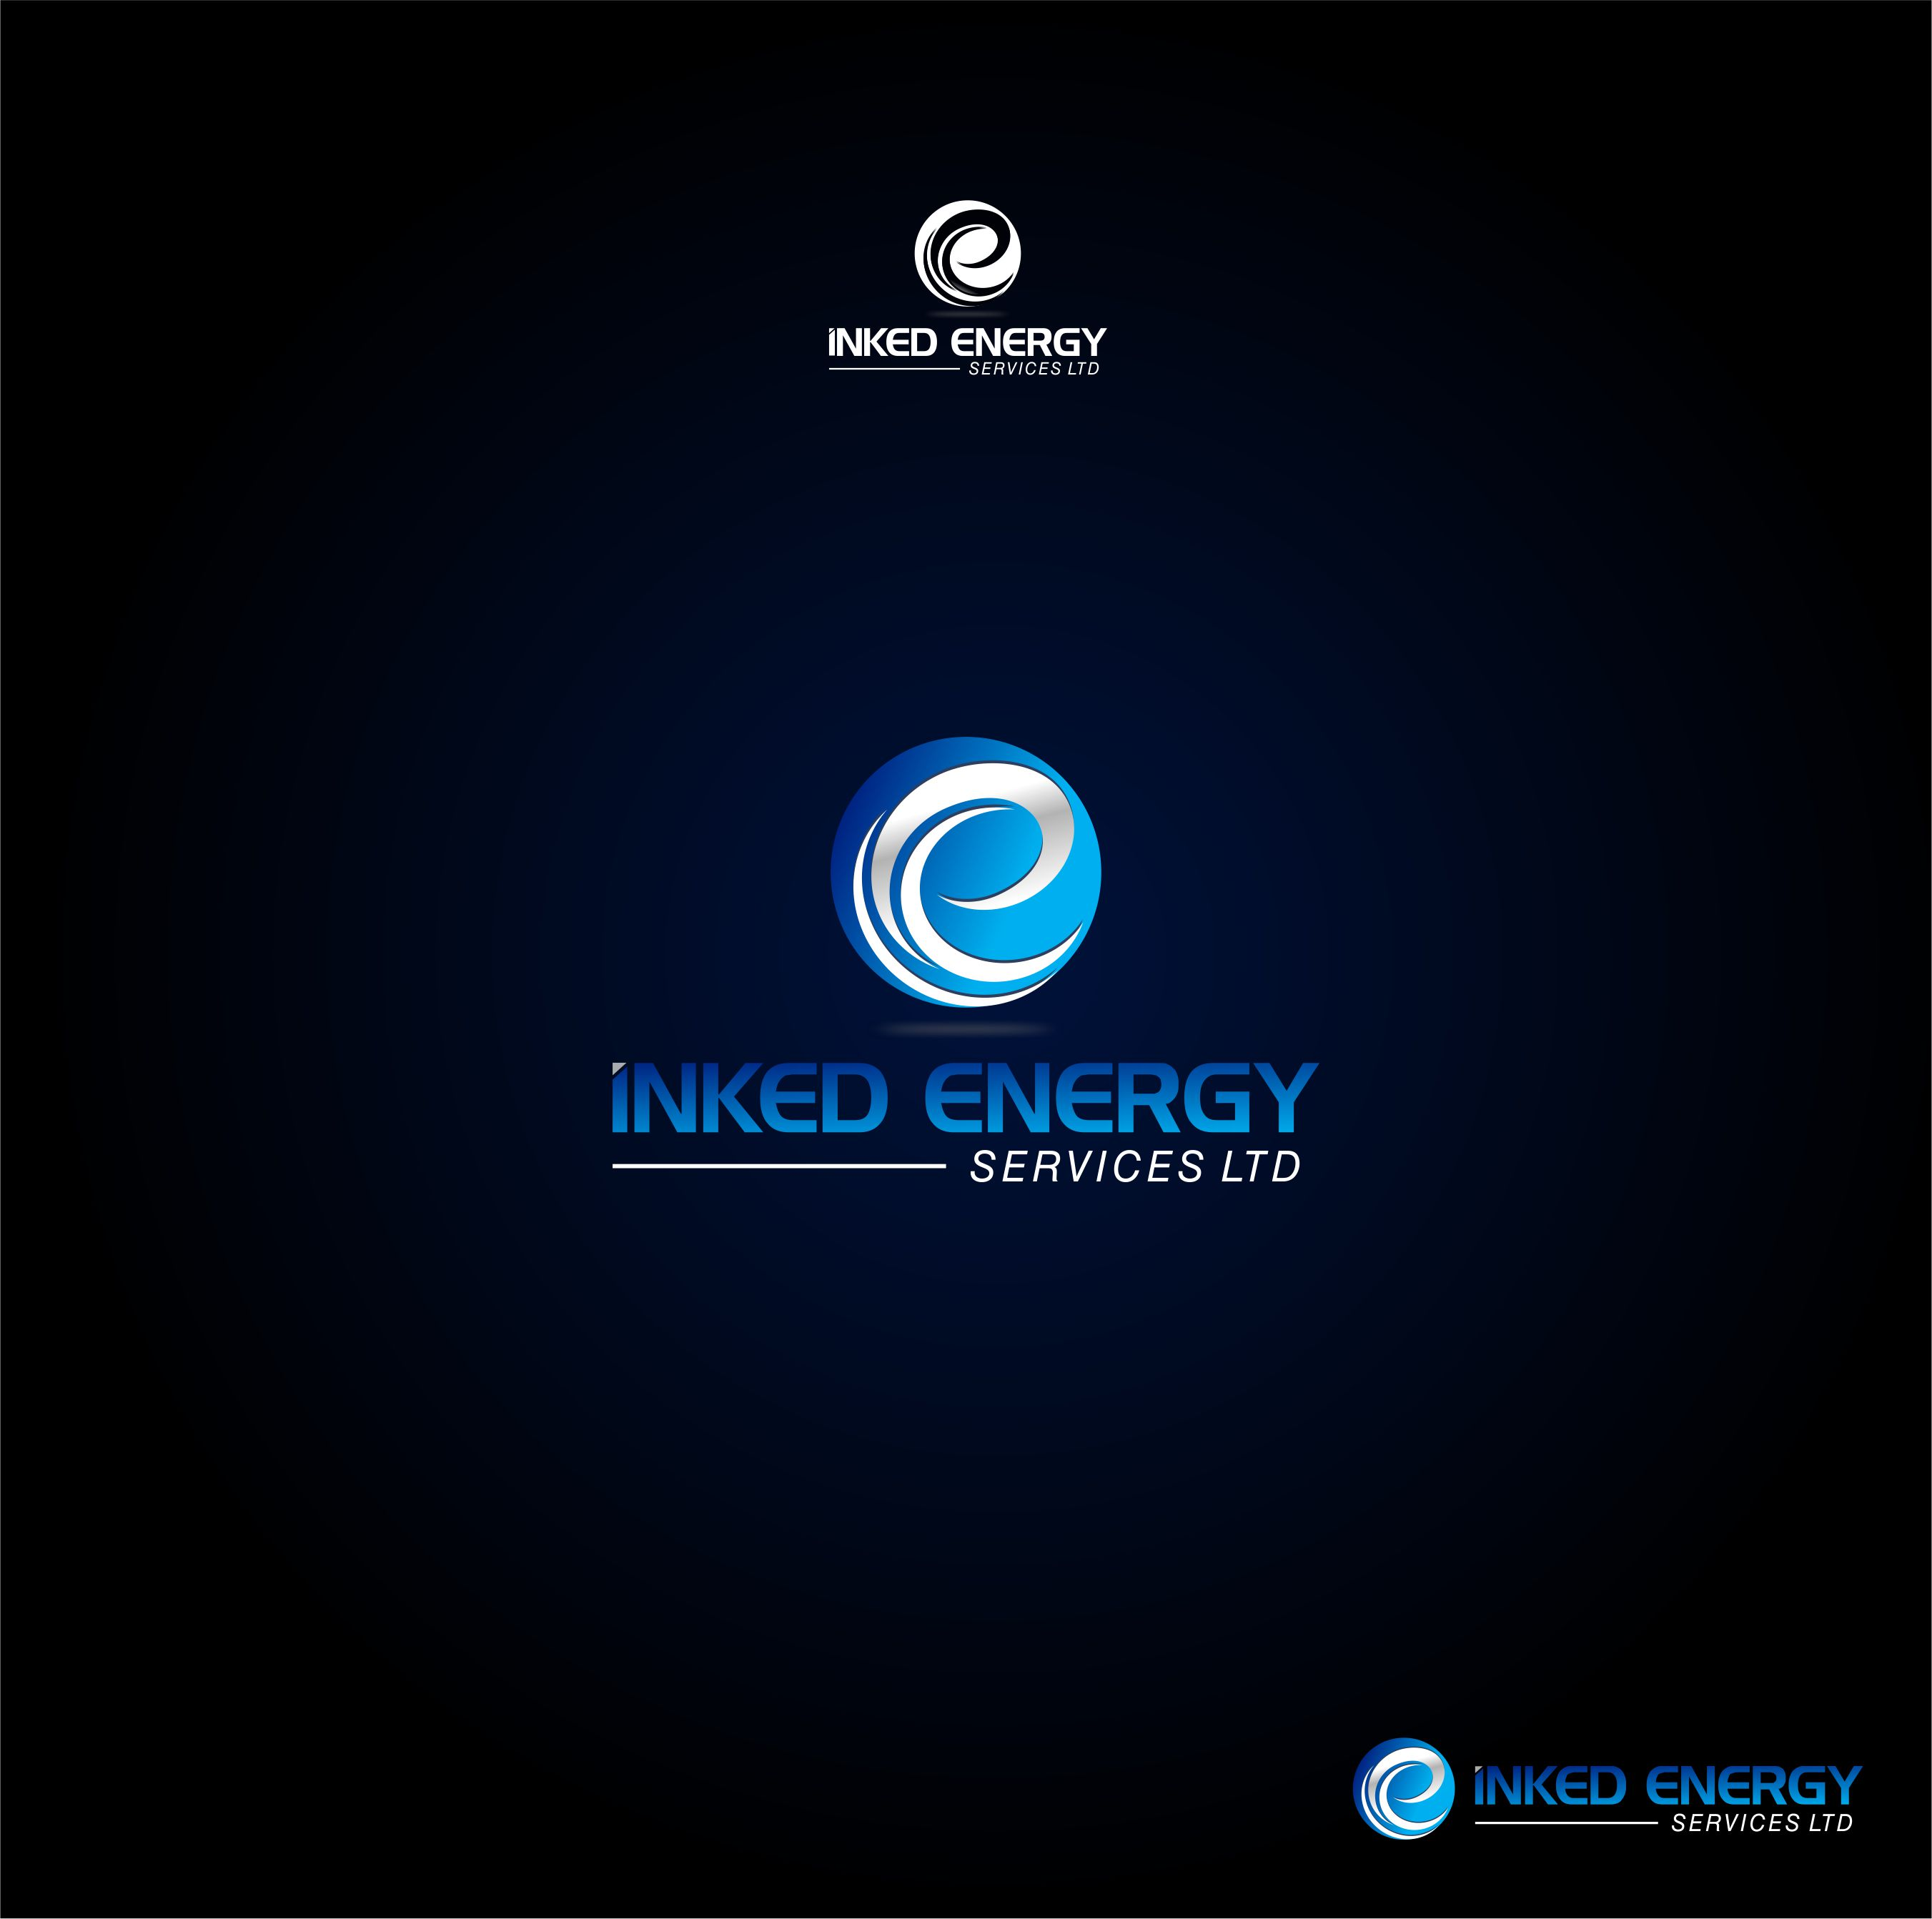 Logo Design by Raymond Garcia - Entry No. 74 in the Logo Design Contest Creative Logo Design for INKED ENERGY SERVICES LTD.